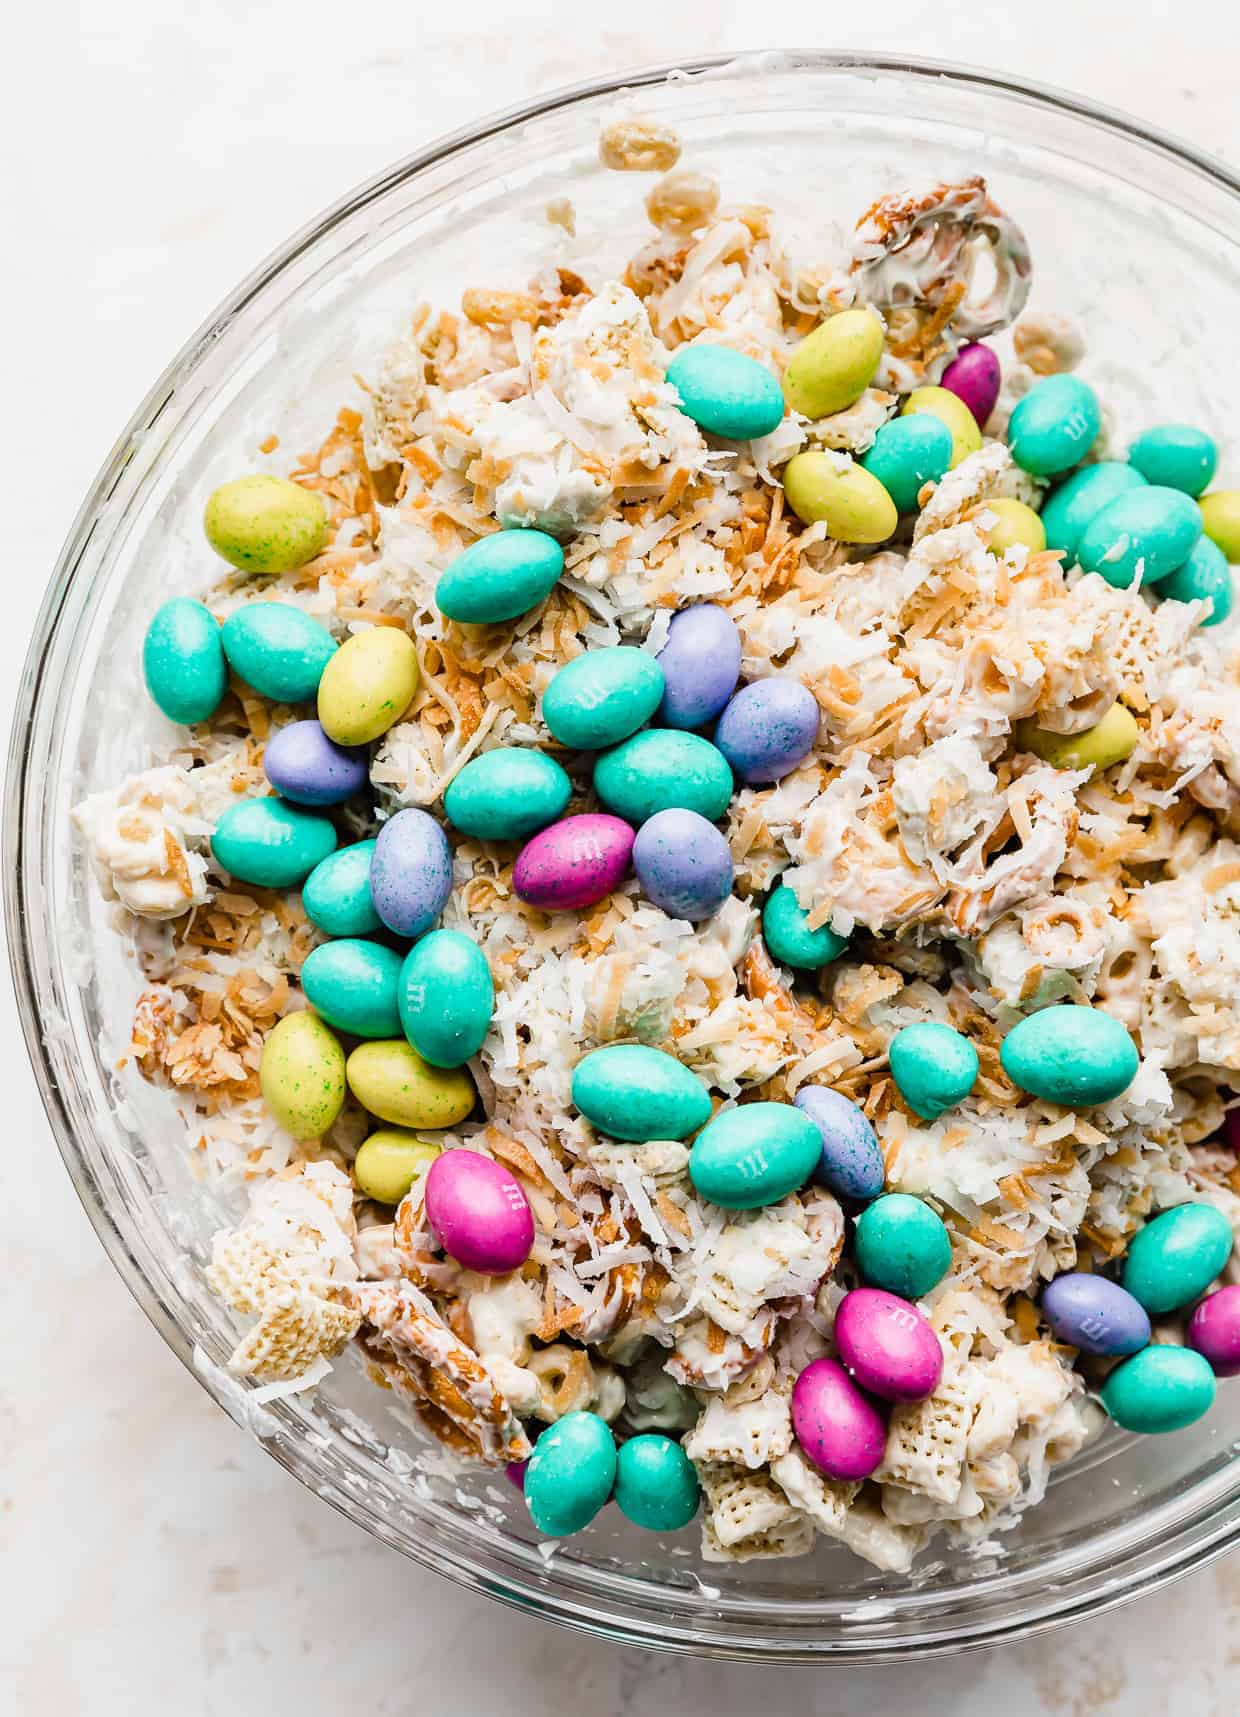 Pastel colored M&M's poured overtop a white chocolate, coconut covered cereal mix.